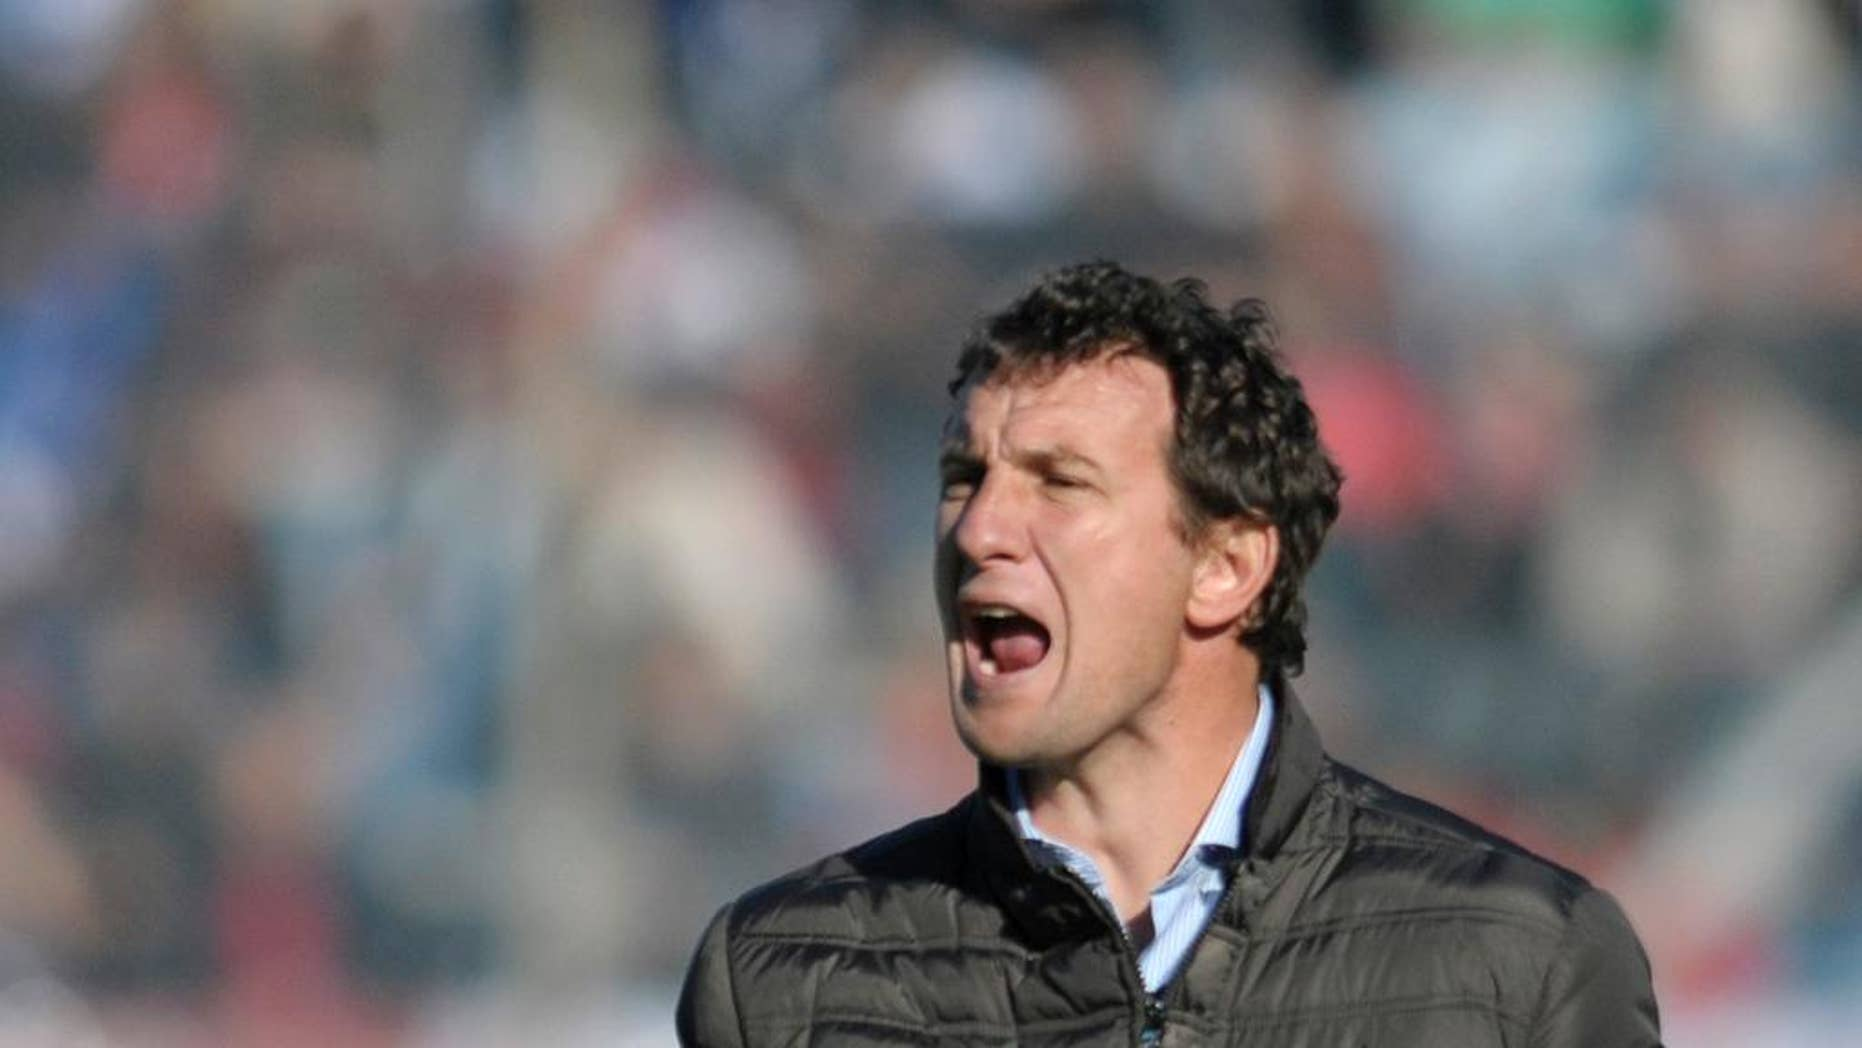 FILE - In this Aug. 4, 2013 file photo, coach of Uruguay's Nacional soccer team, Rodolfo Arruabarrena, yells from the sidelines of a friendly soccer game against Spain's Atletico de Madrid in Montevideo, Uruguay. Arruabarrena became the new coach for Argentina's Boca Juniors, replacing fired coach Carlos Bianchi, announced Friday, Aug. 29, 2014 by the club on their official website. (AP Photo/Matilde Campodonico, File)